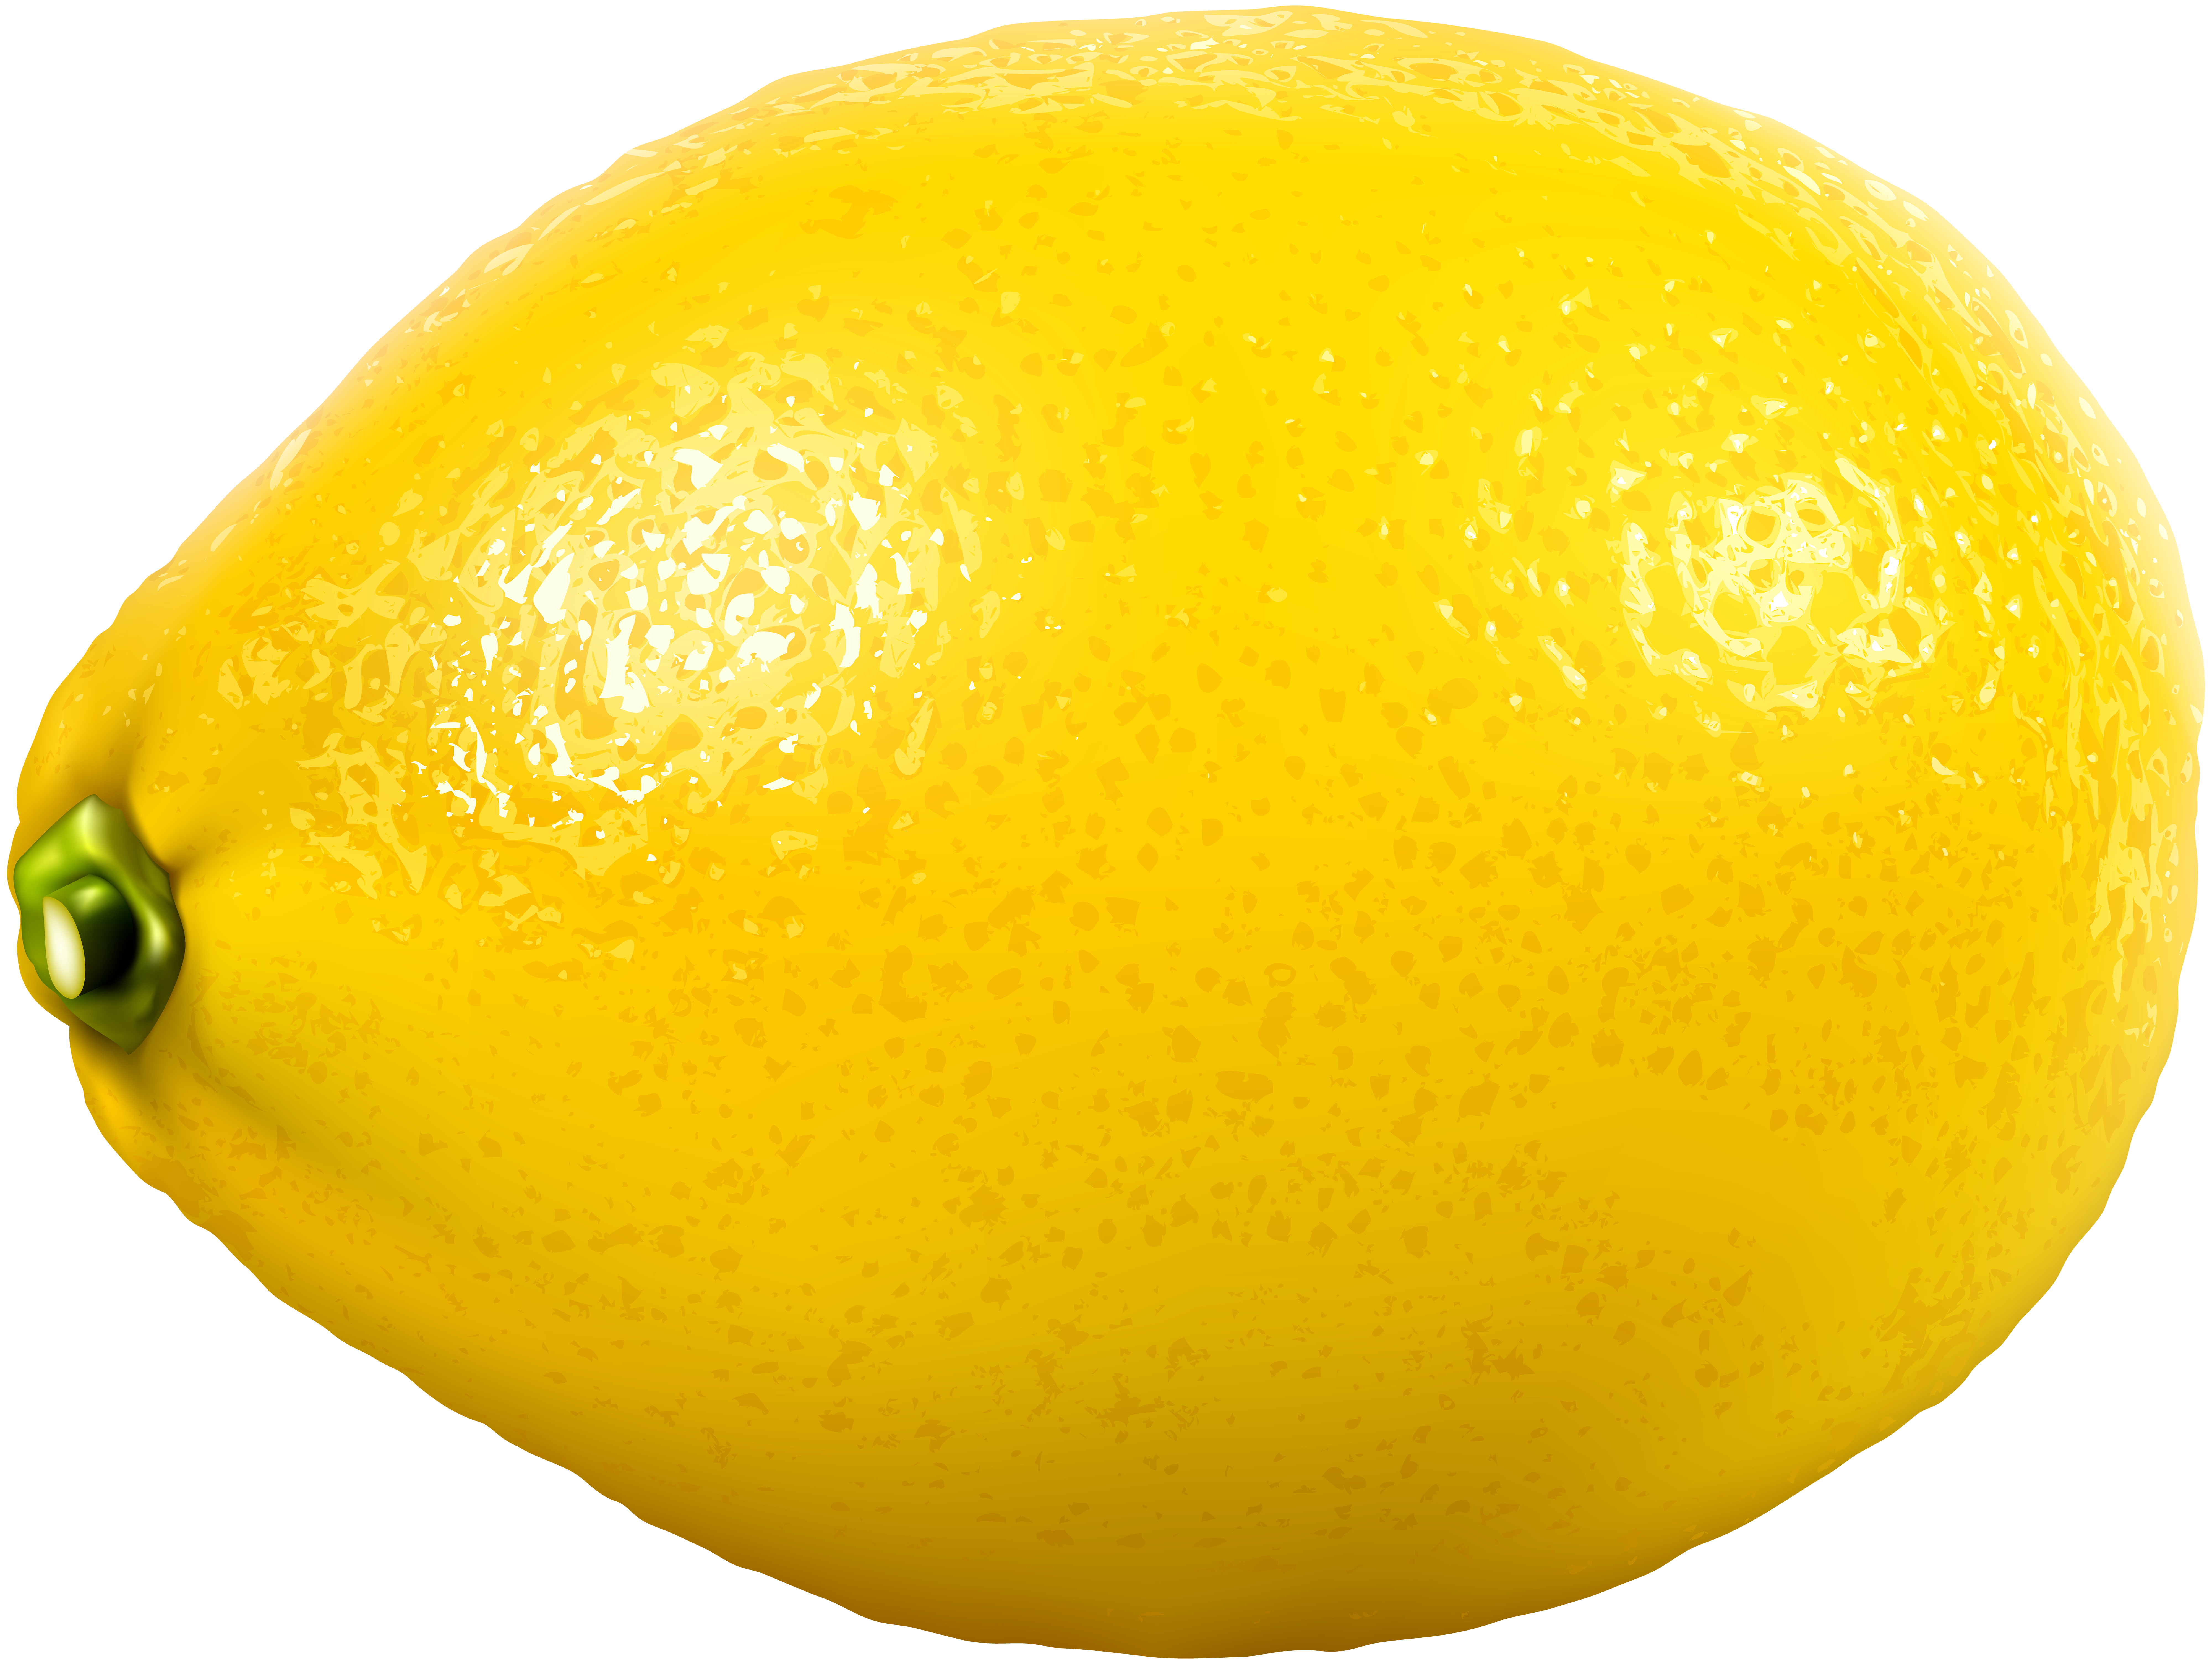 Lemons clipart high resolution. Yellow lemon transparent image